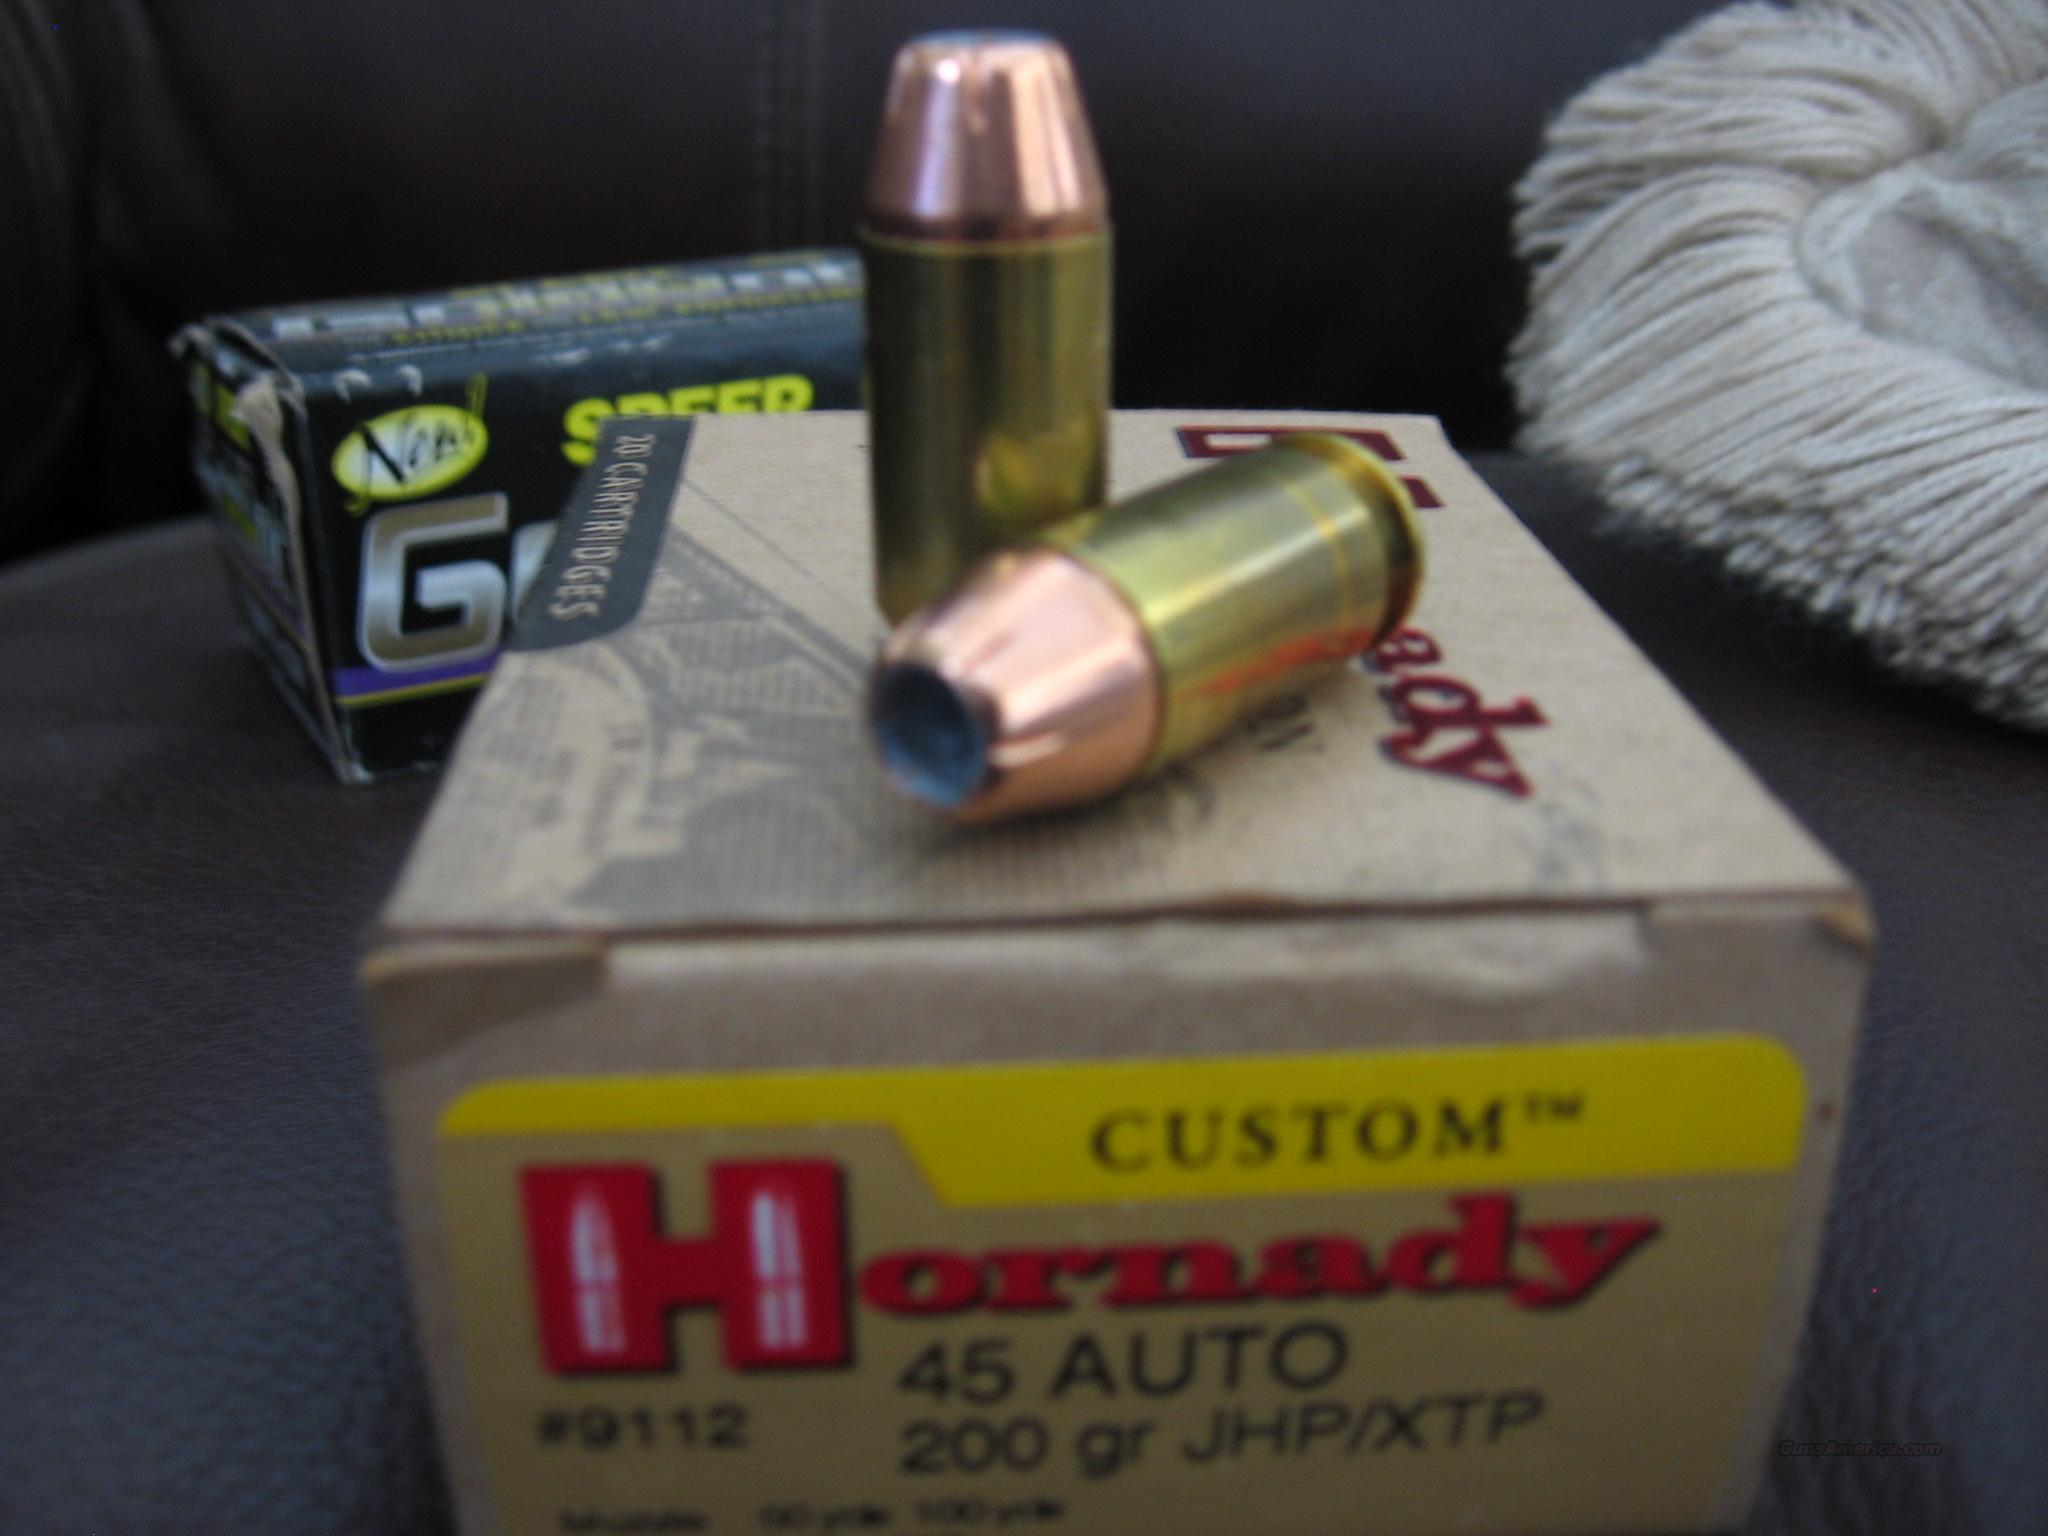 CUSTOM HORNANDY 45 AUTO 200GR JHP/XTP  Non-Guns > Ammunition